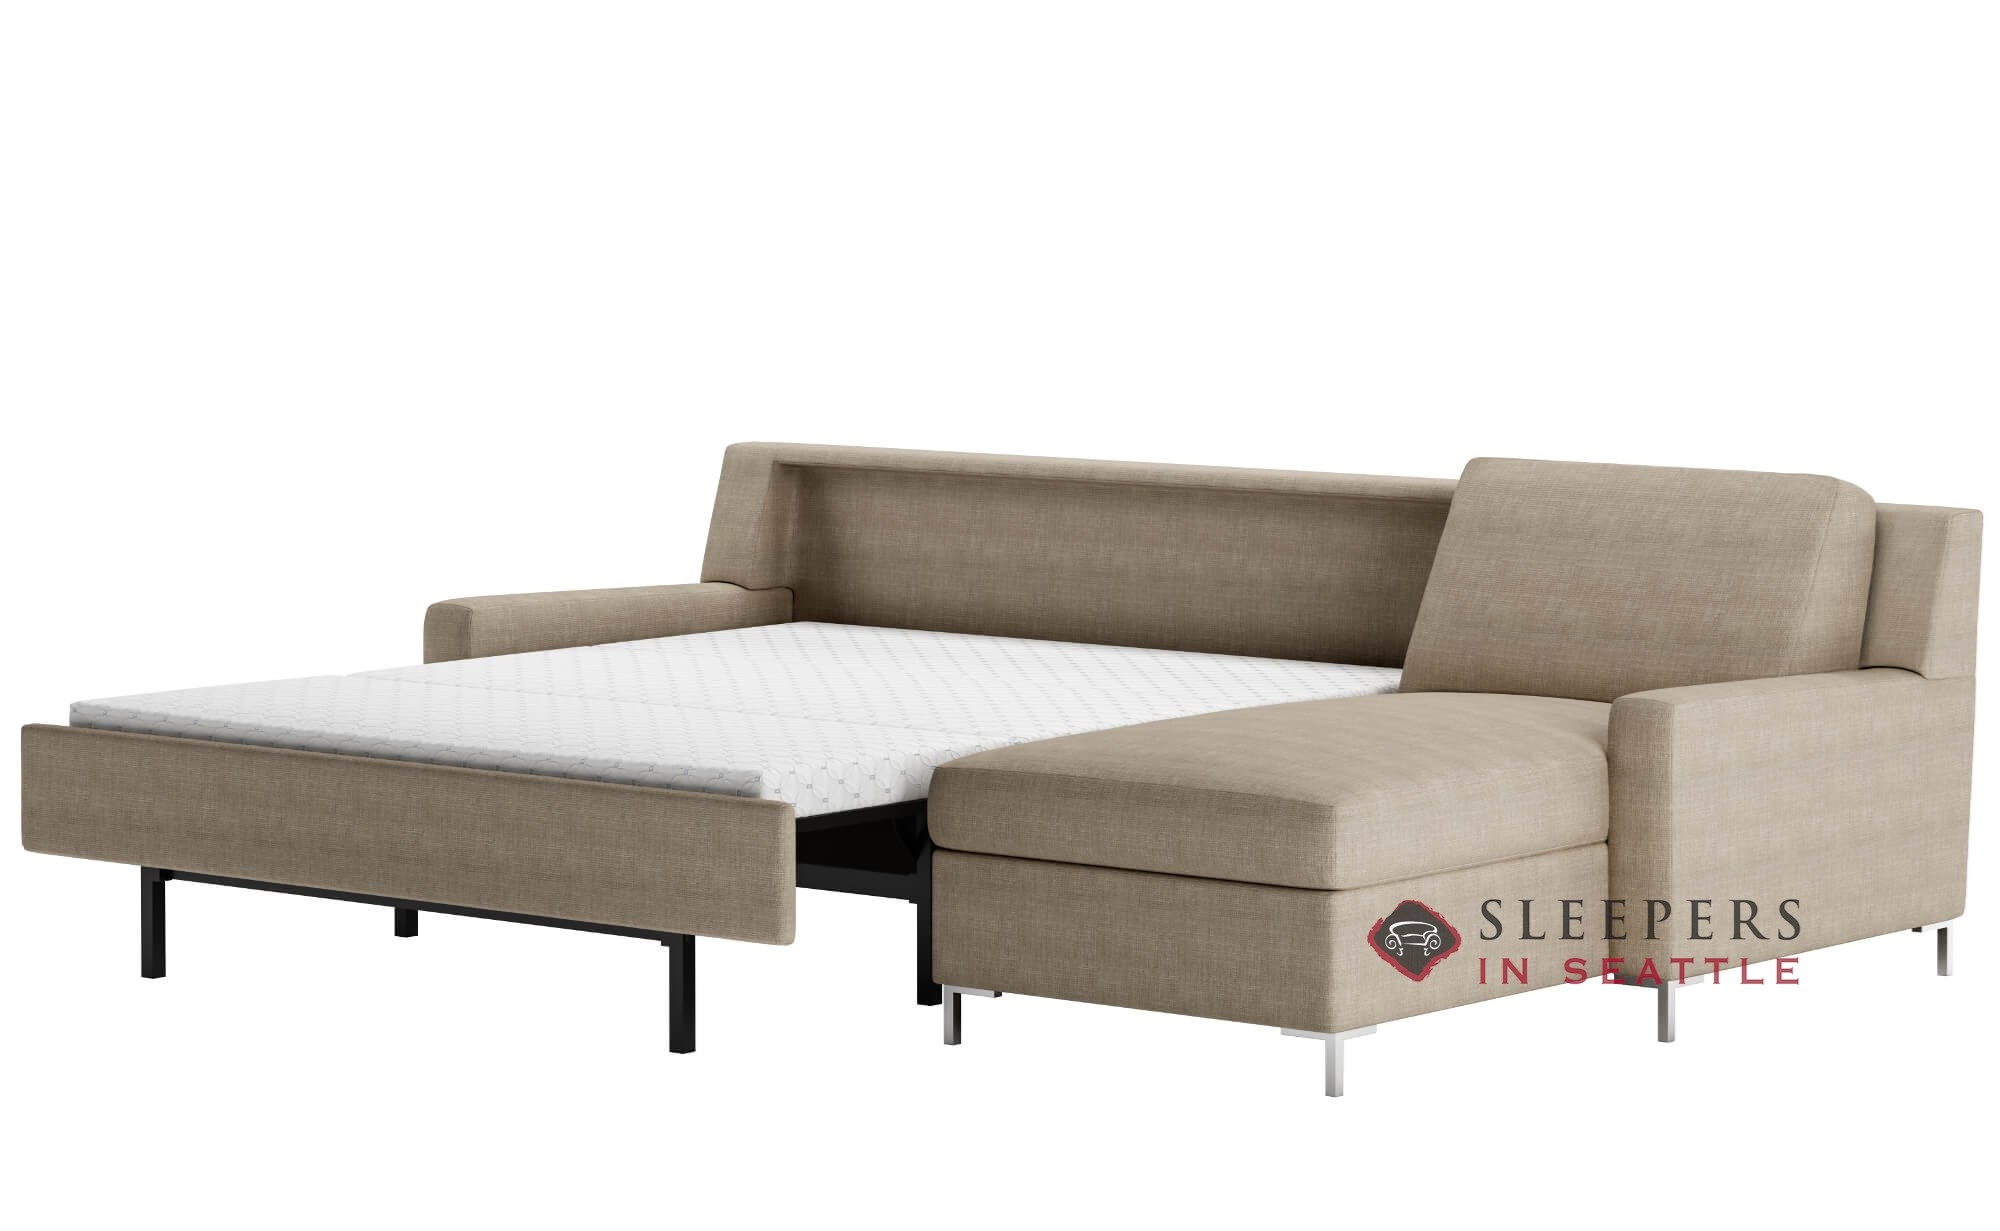 American Leather Bryson Comfort Sleeper Generation Viii Open